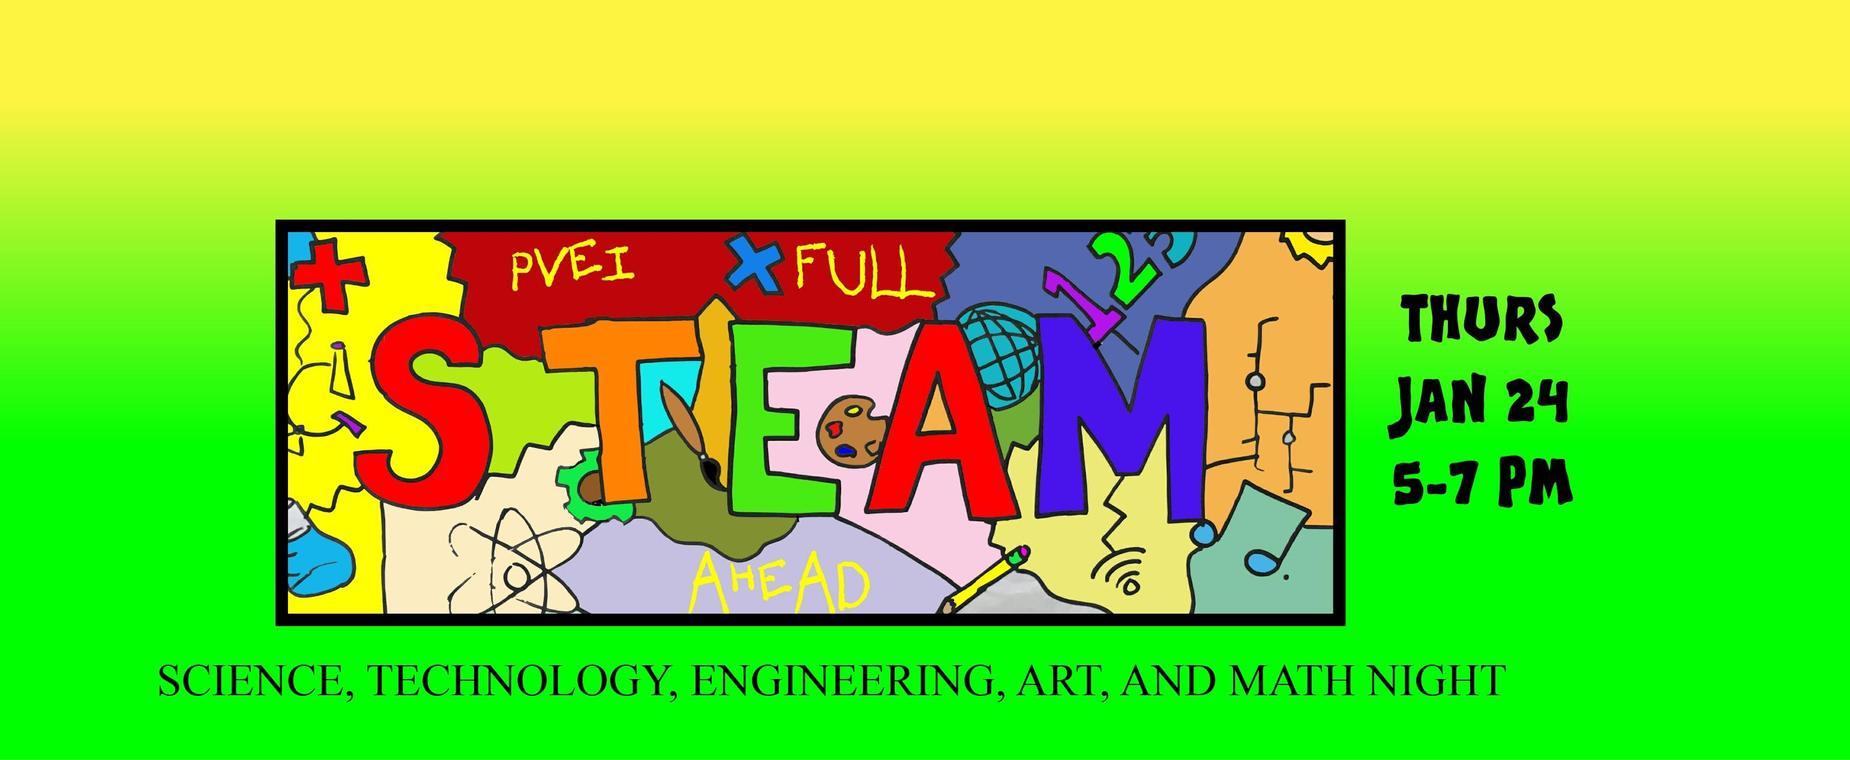 PVEI STEAM NIGHT Thursday, January 24 from 5-7